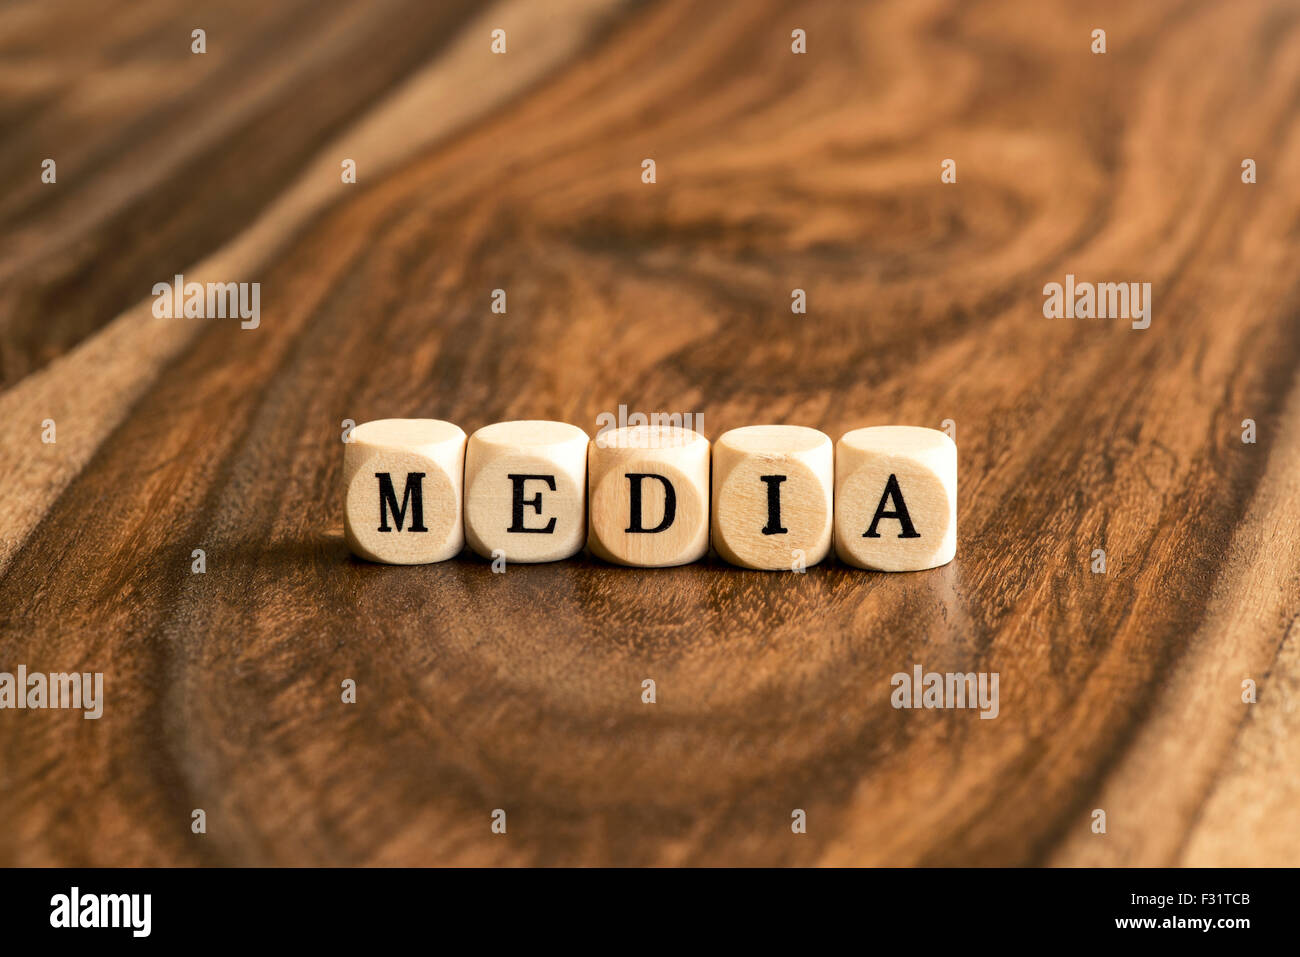 MEDIA word background on wood blocks - Stock Image